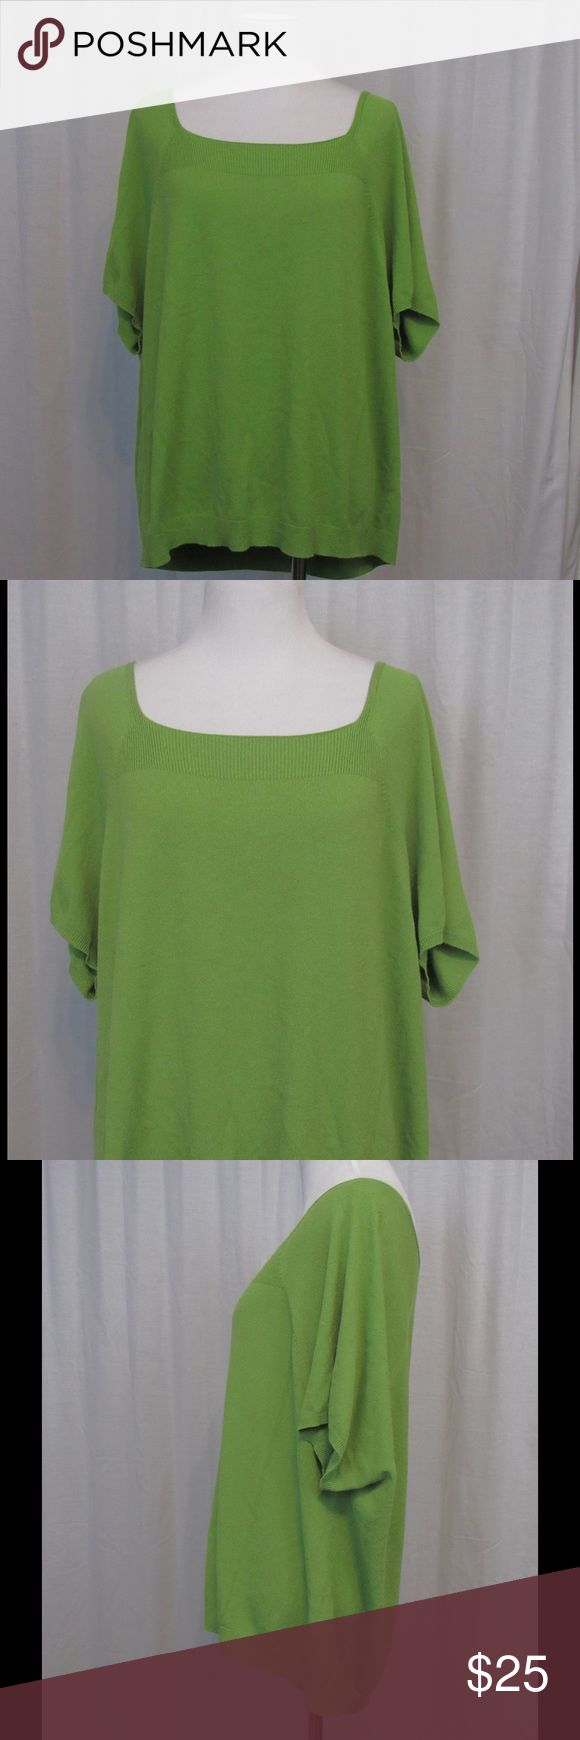 "NWT Talbots Green Short Sleeve Top 3X NEW Brand: Talbots Size: 3X Color: Green Material: 65% rayon 35% nylon Care Instructions: machine wash  Bust: 48"" Length: 24""  All clothing is in excellent used condition. All clothes have been inspected and unless otherwise noted have no rips, holes or stains.   Cont: P15 Talbots Tops Blouses"